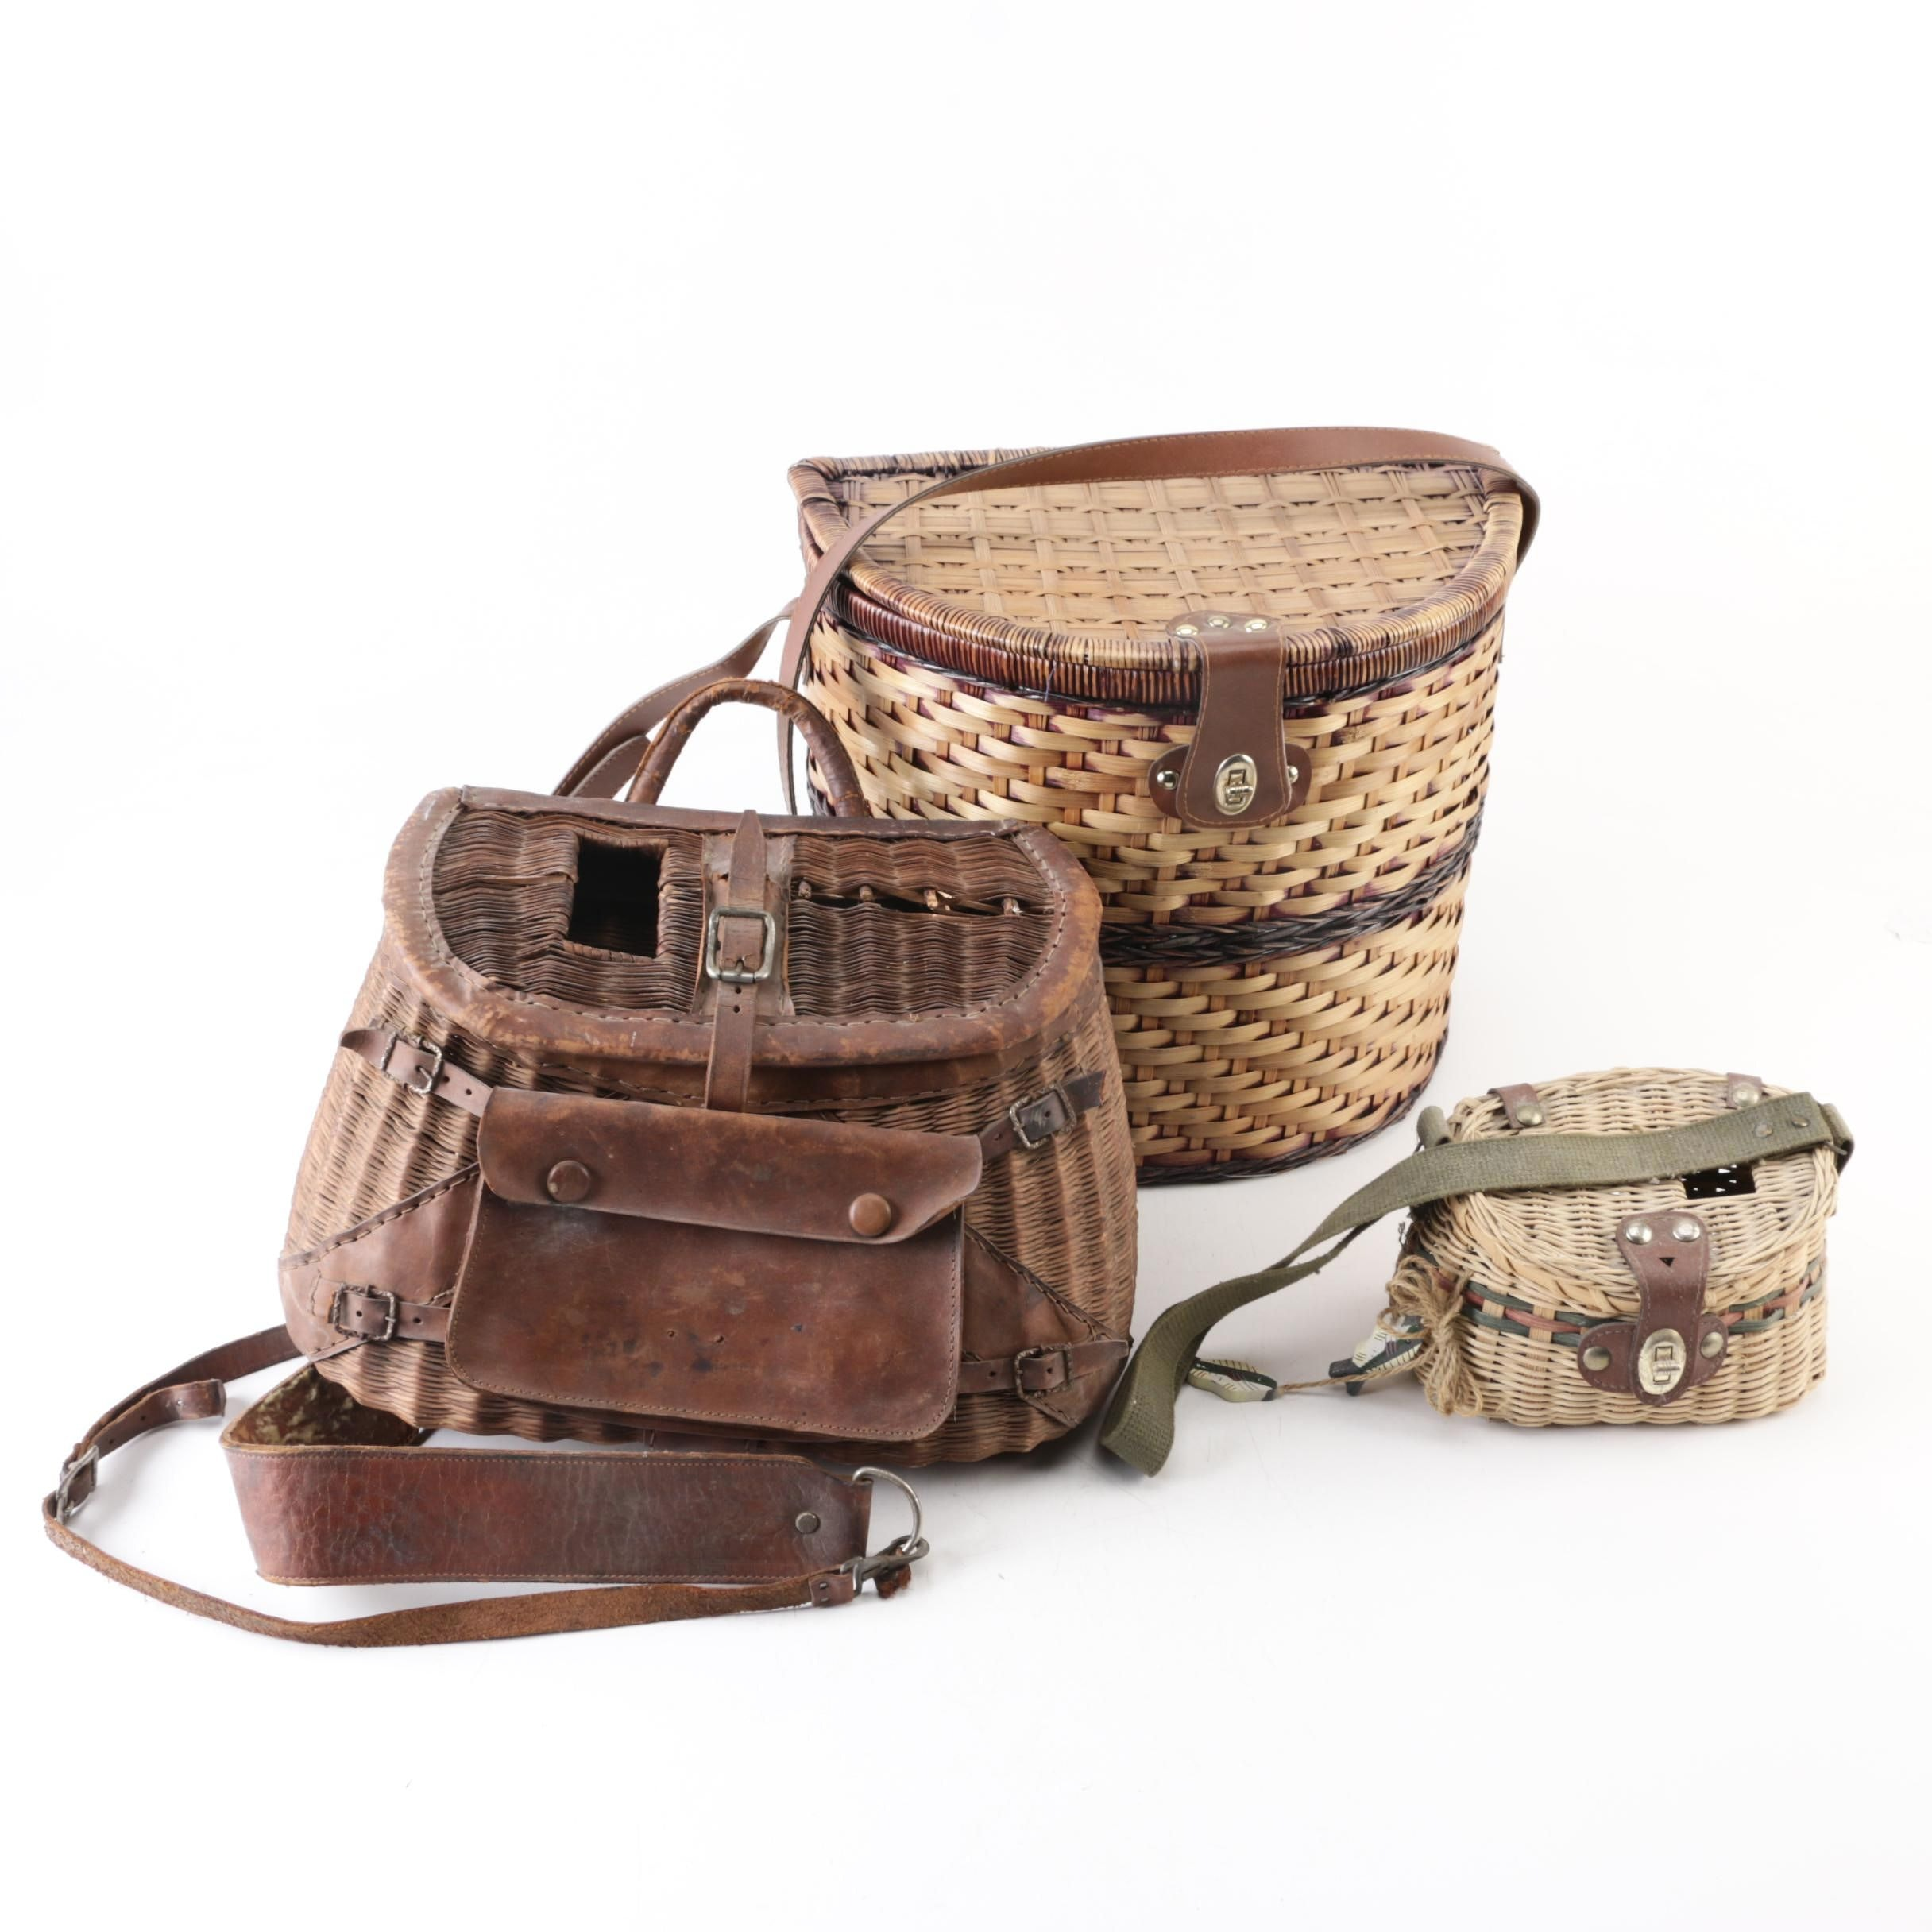 Vintage Creel Baskets and Picnic Baskets